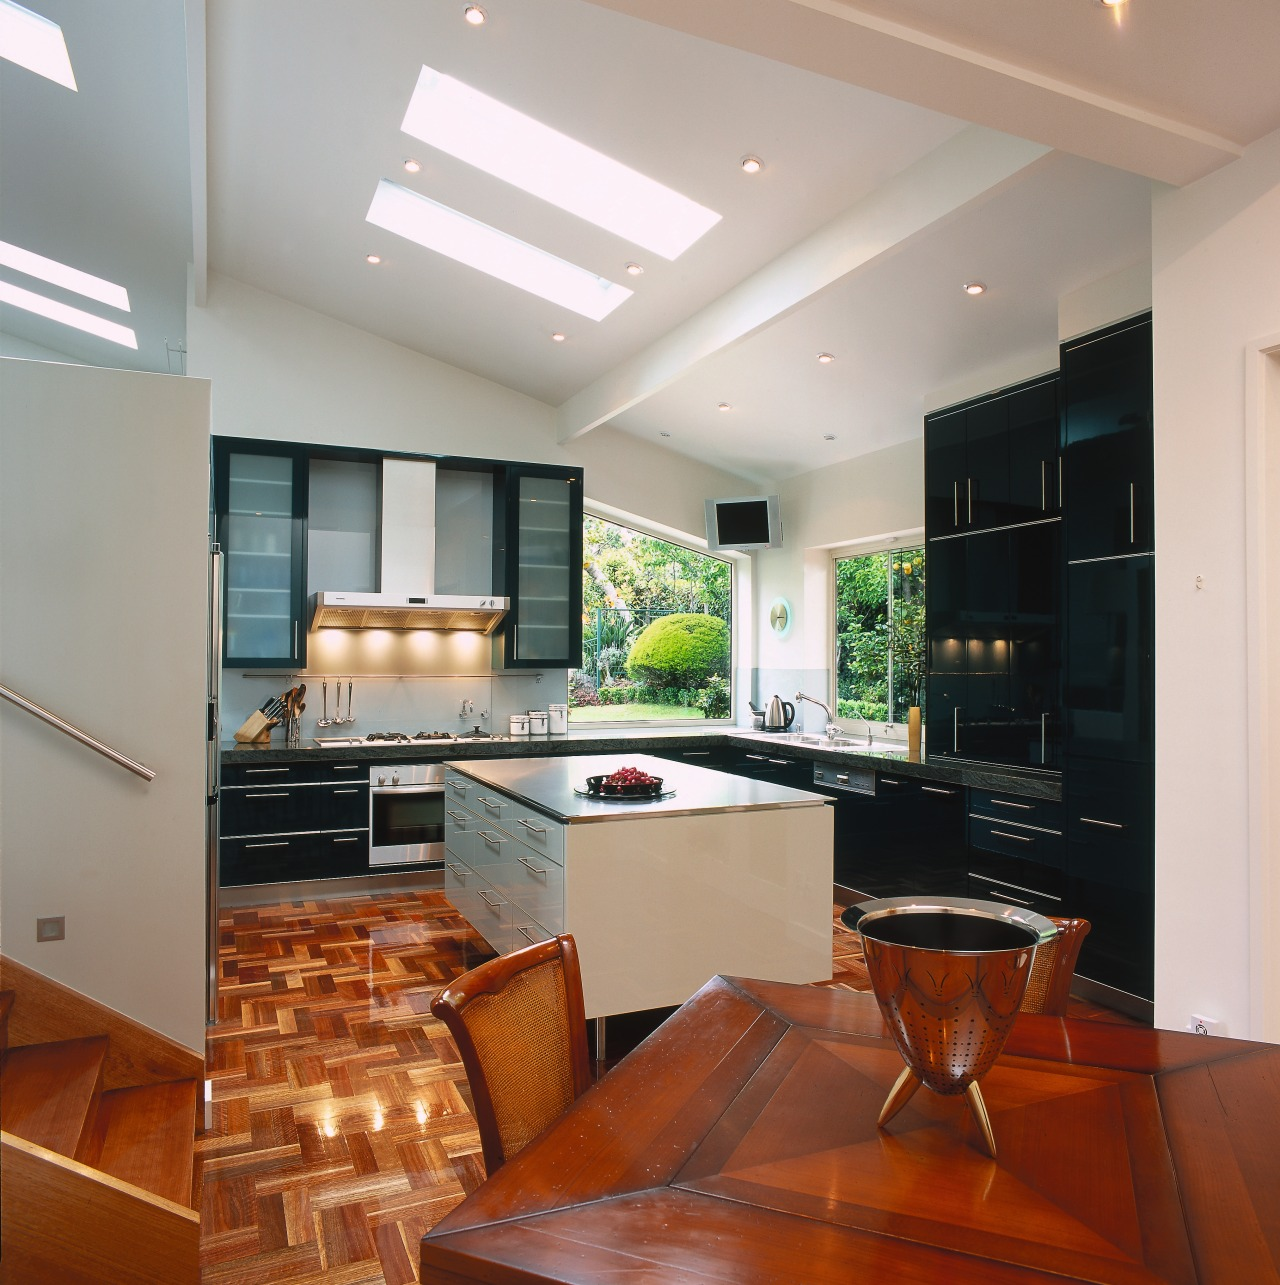 view of the kitchen an dining area cabinetry, ceiling, countertop, interior design, kitchen, real estate, room, under cabinet lighting, gray